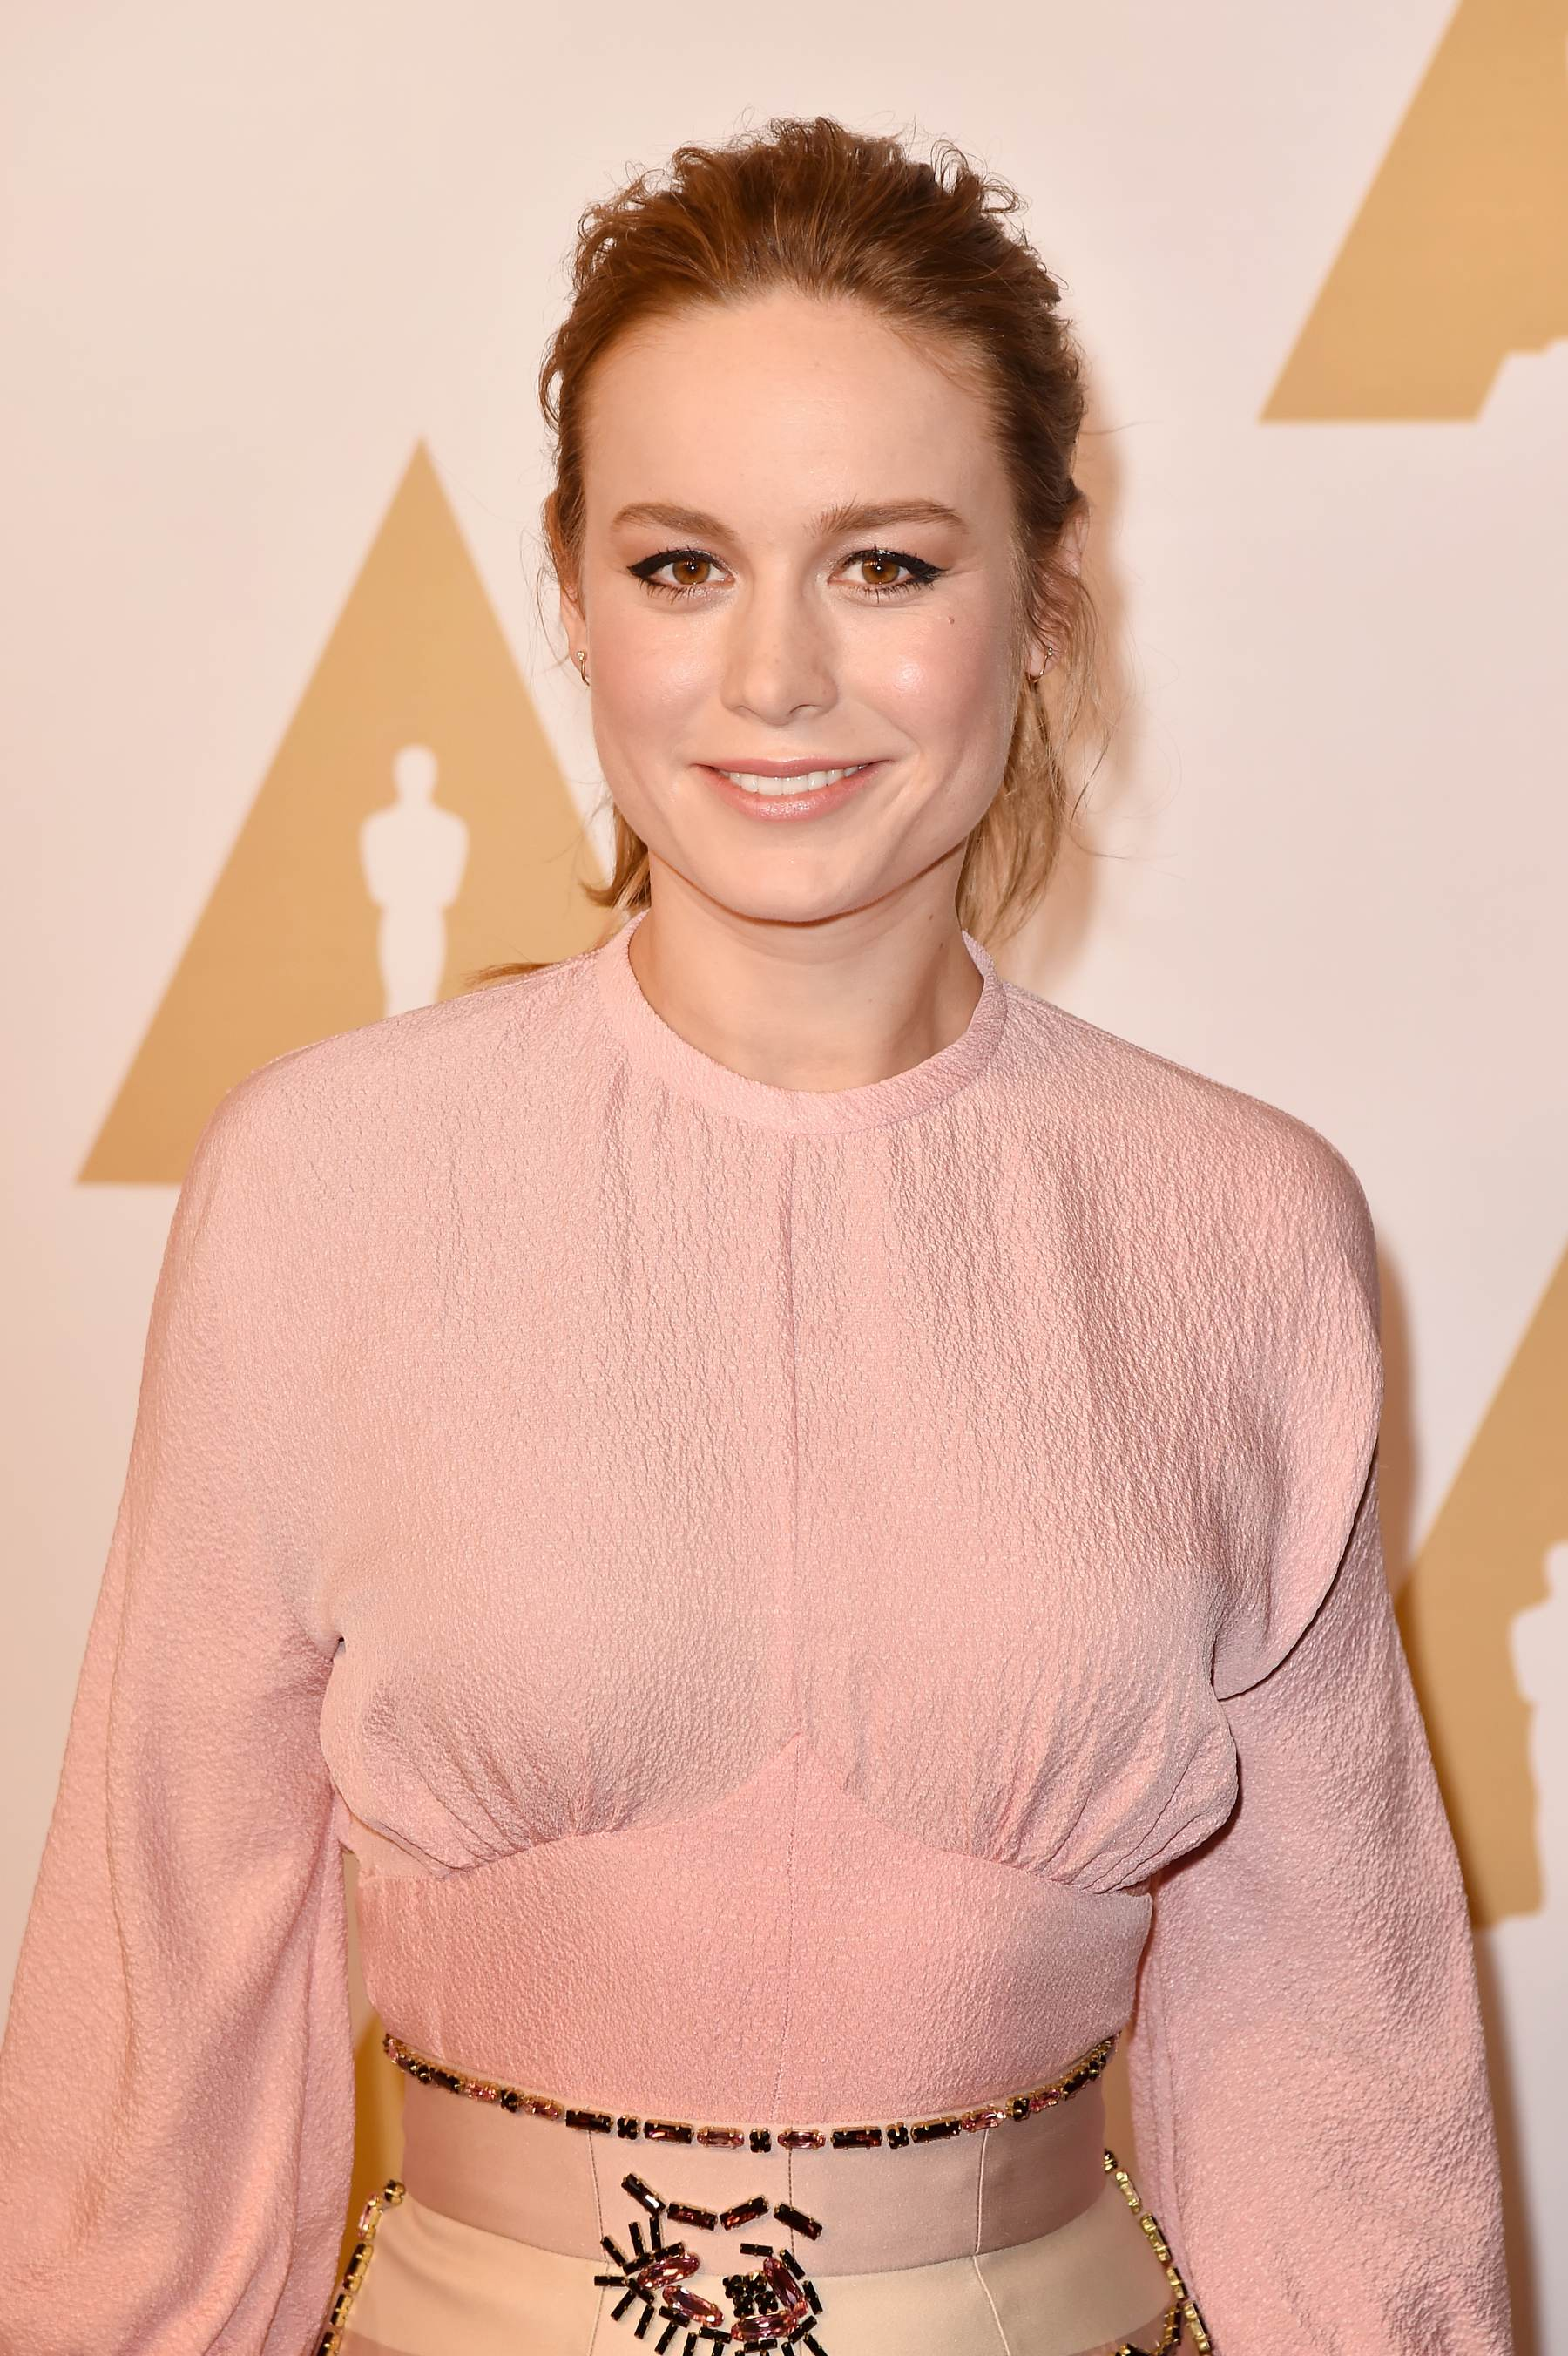 Brie Larson arrives at Annual Academy Awards Nominee Luncheon-1